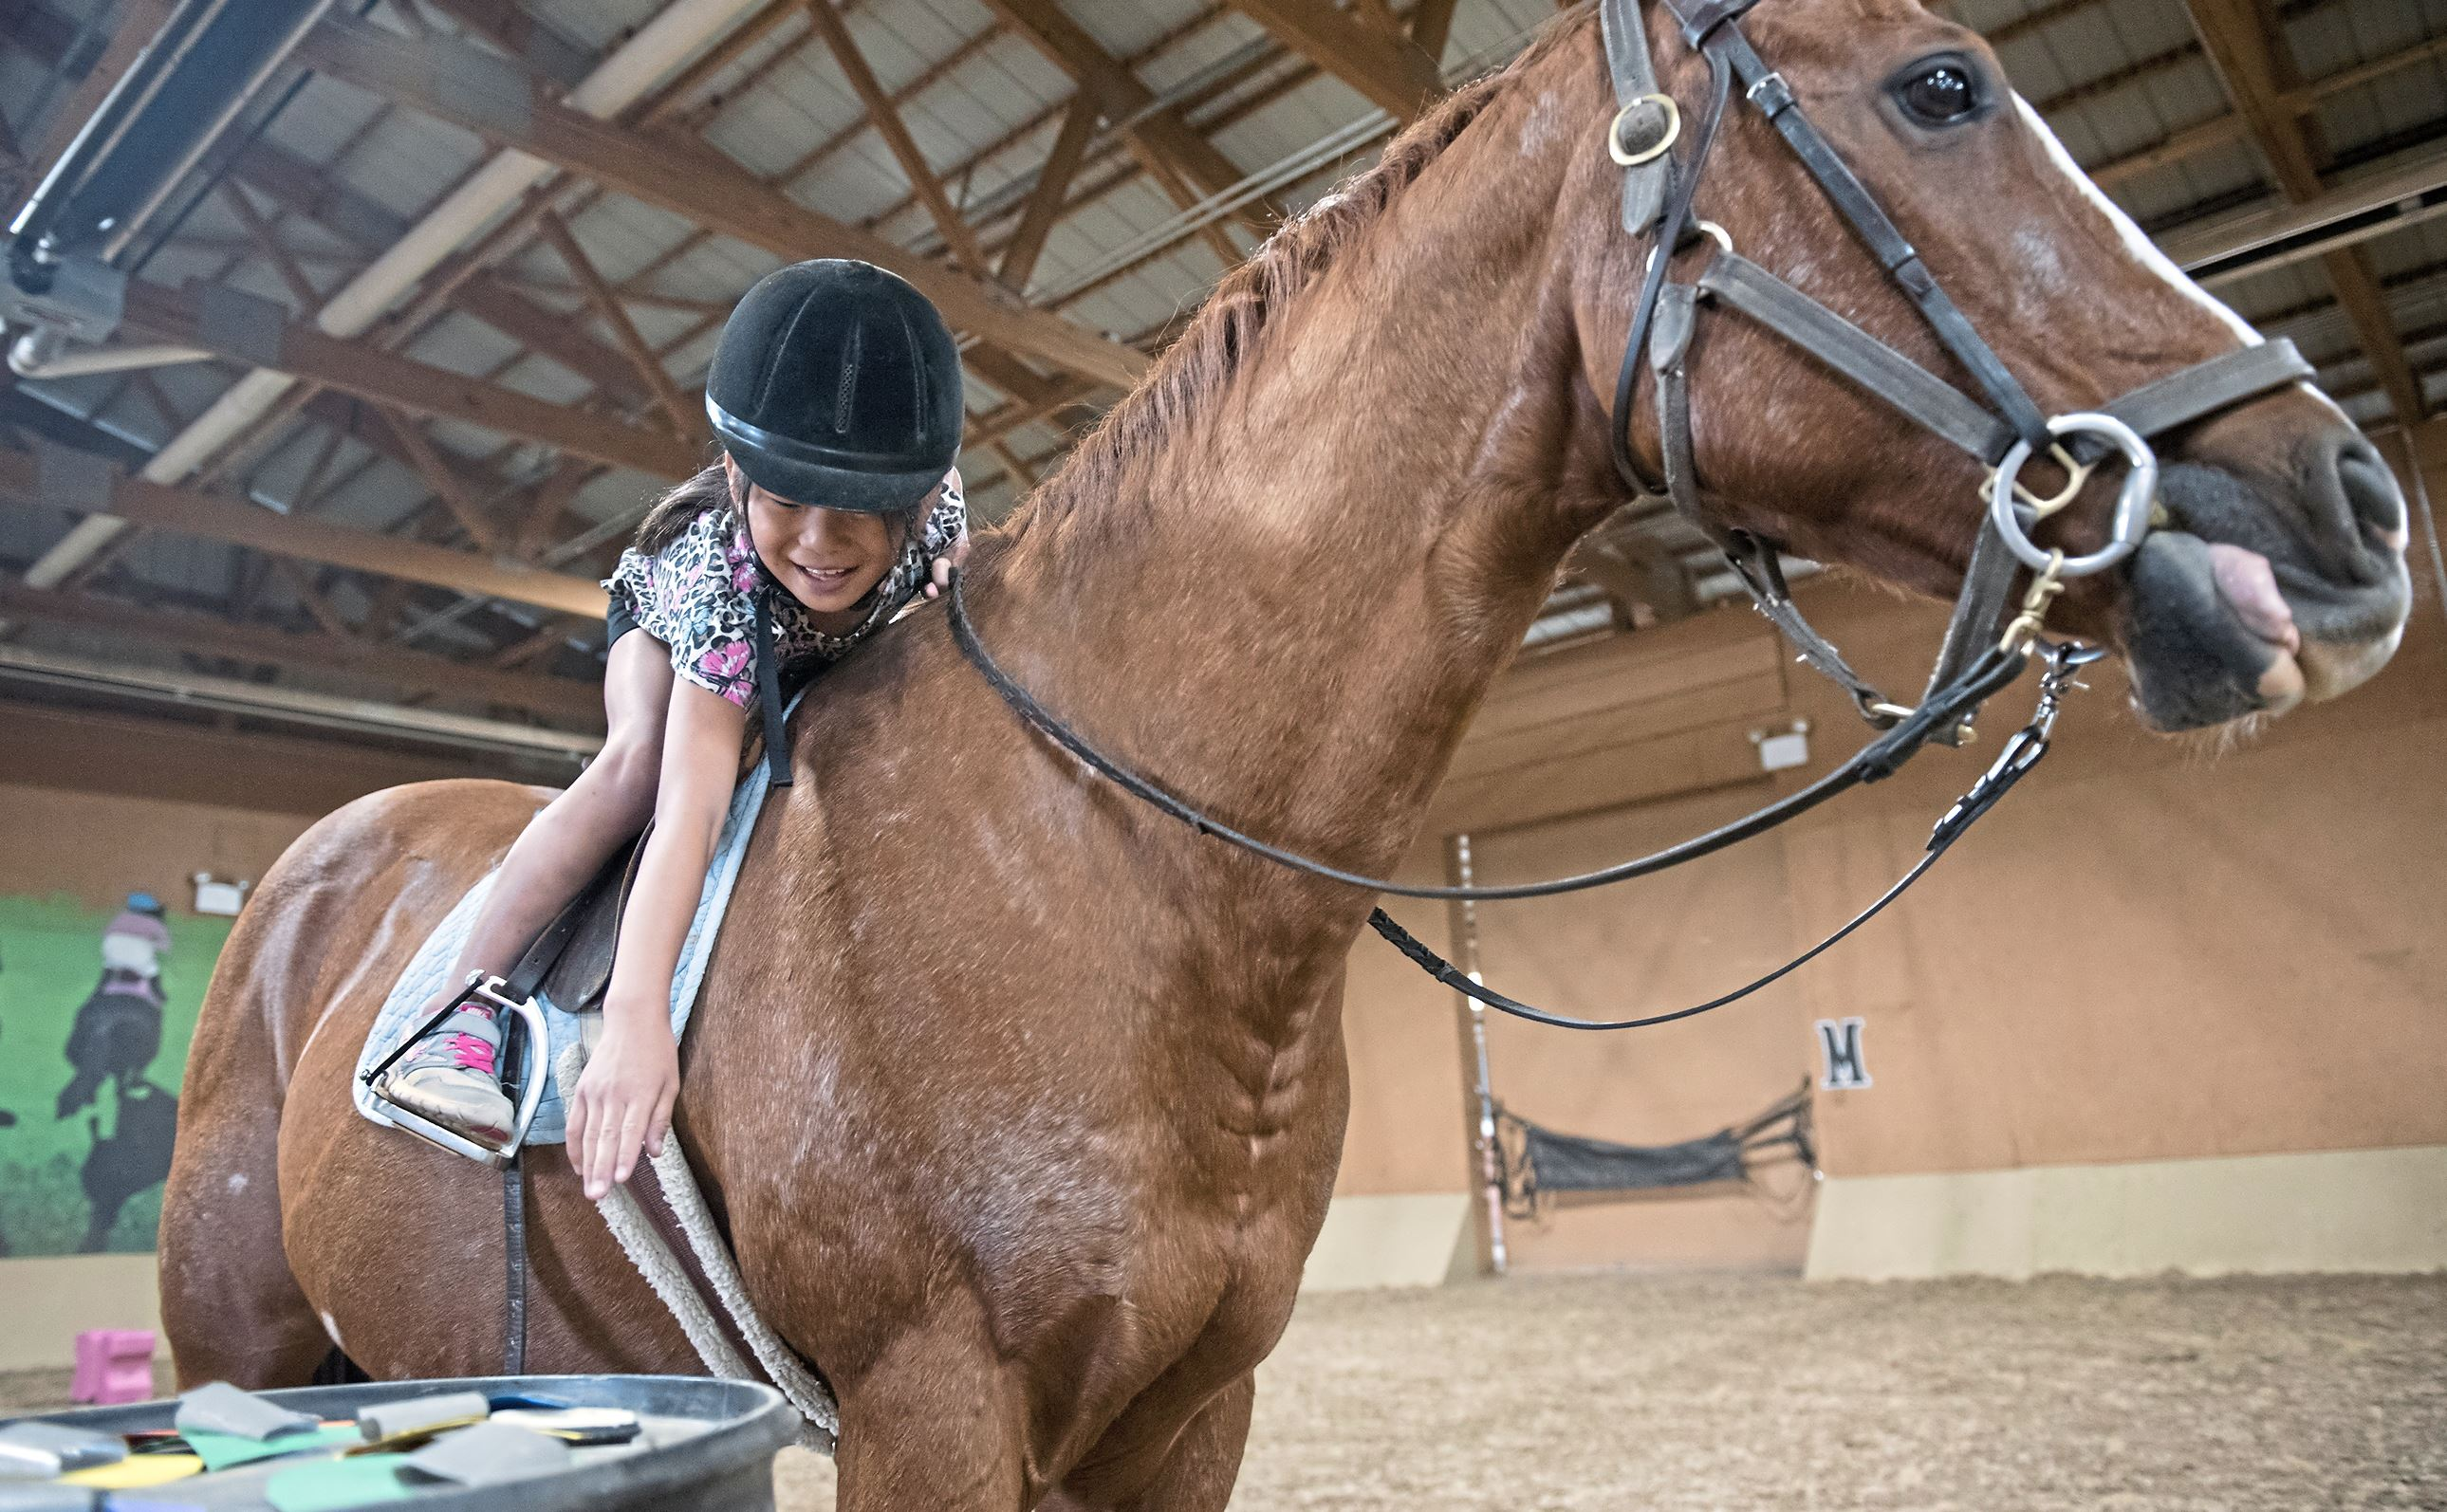 20171006hnRiding-9-10 Heather Holtz, 8, of Slippery Rock reaches for a paper shape during a riding lesson at Storm Harbor Equestrian Center in Slippery Rock.